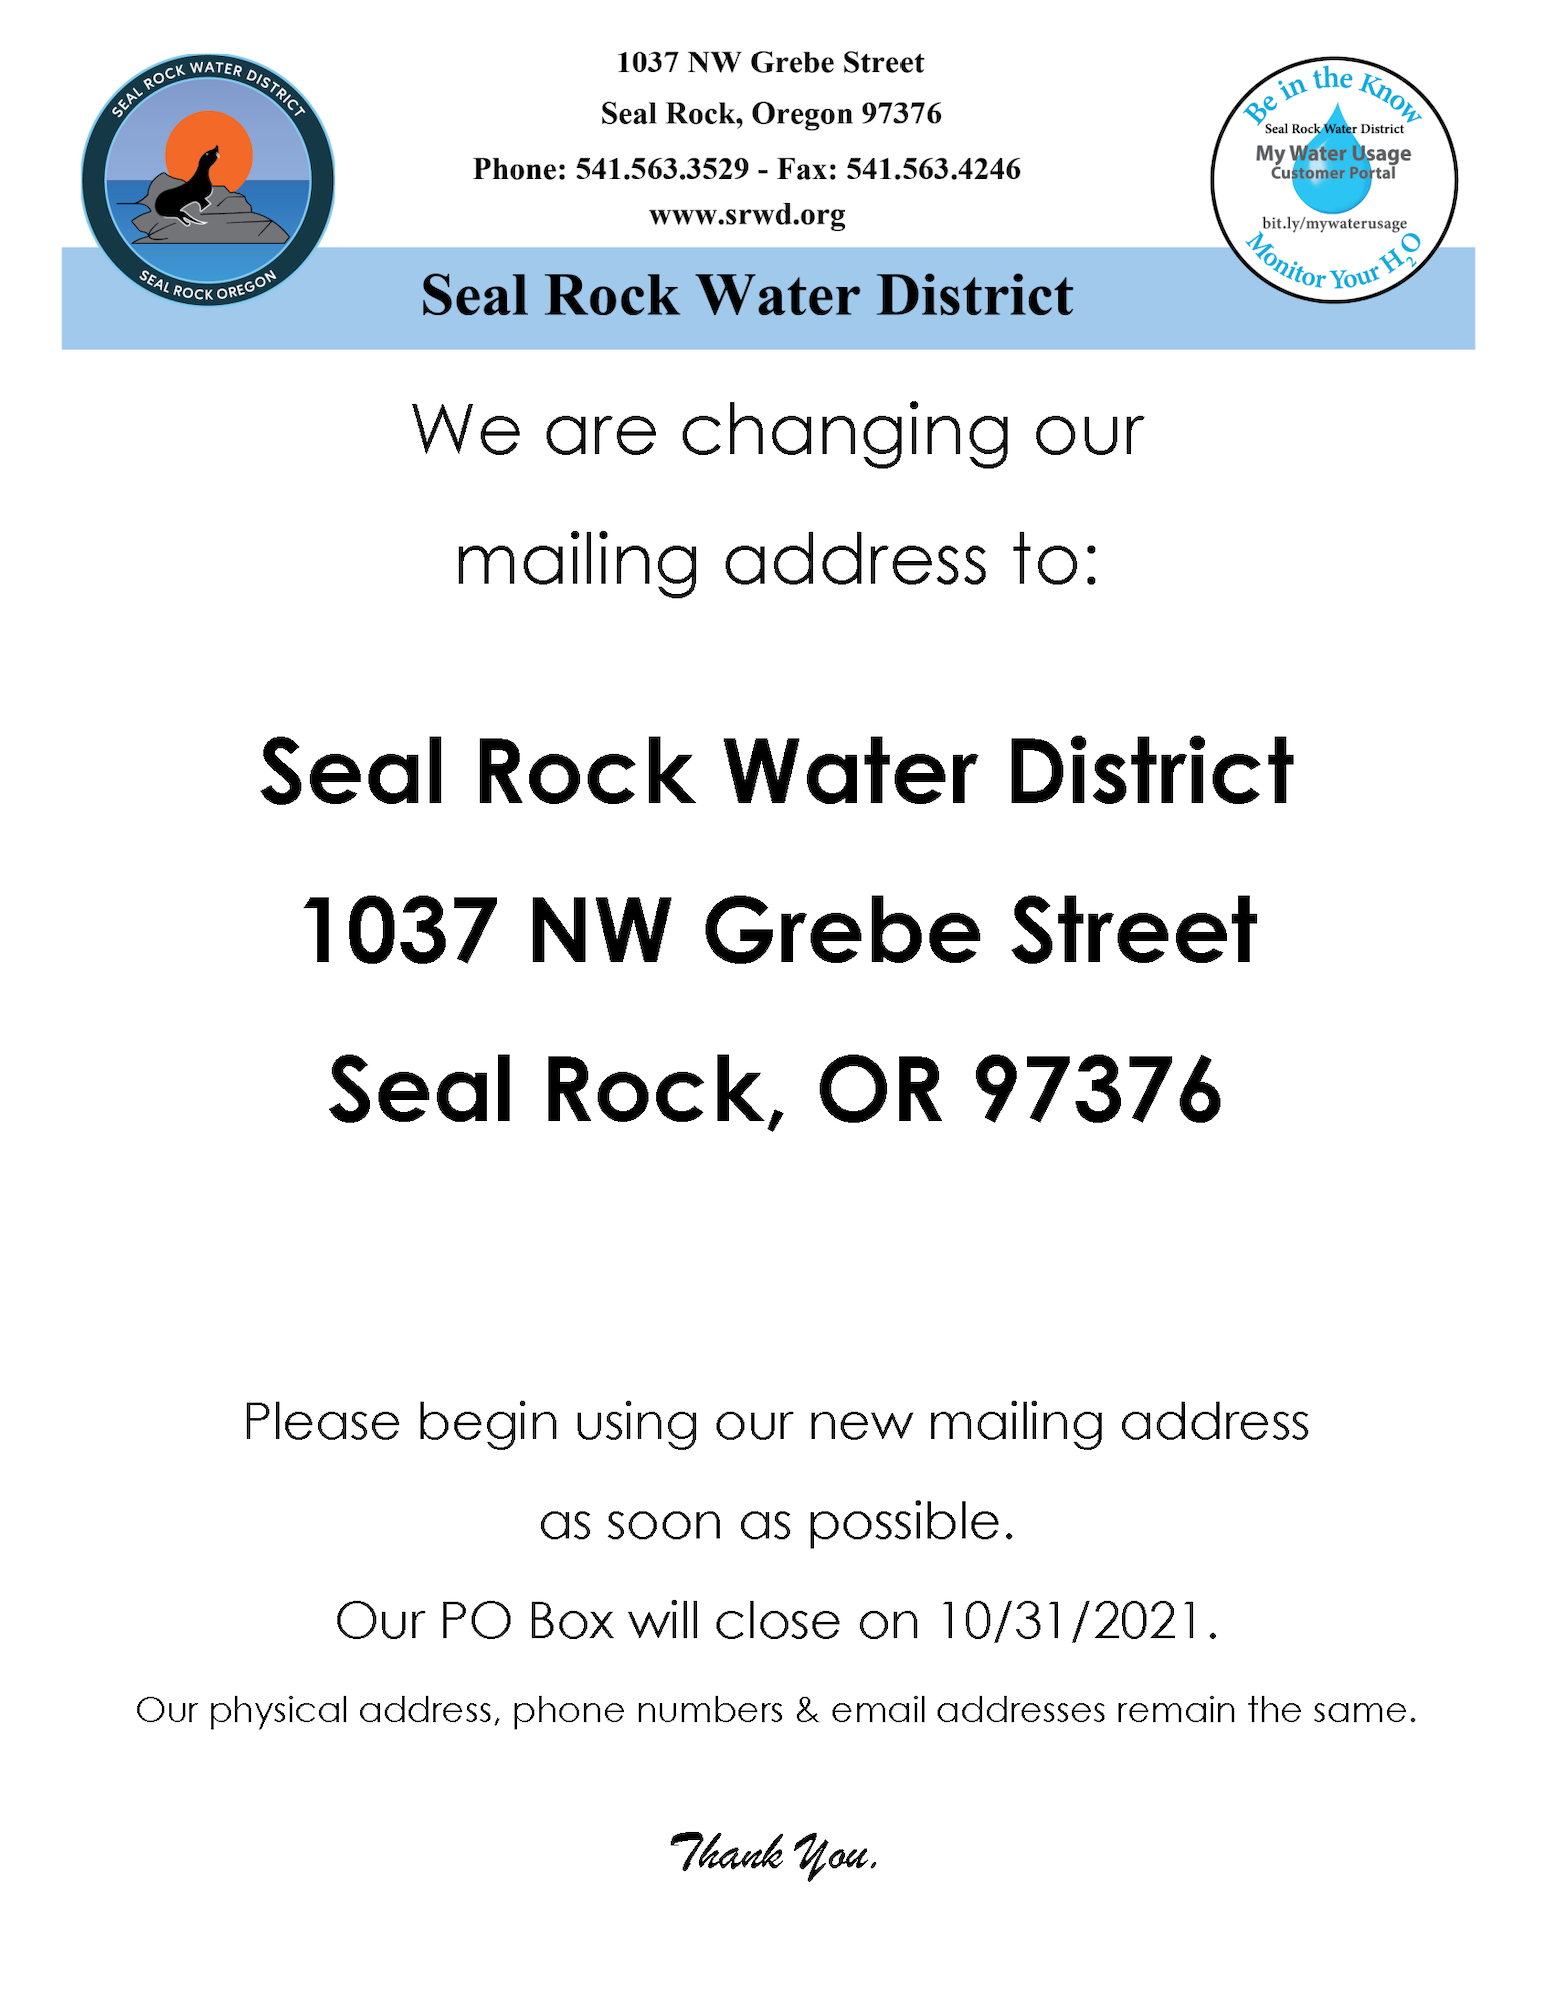 Seal Rock Water District has changed their mailing address flyer